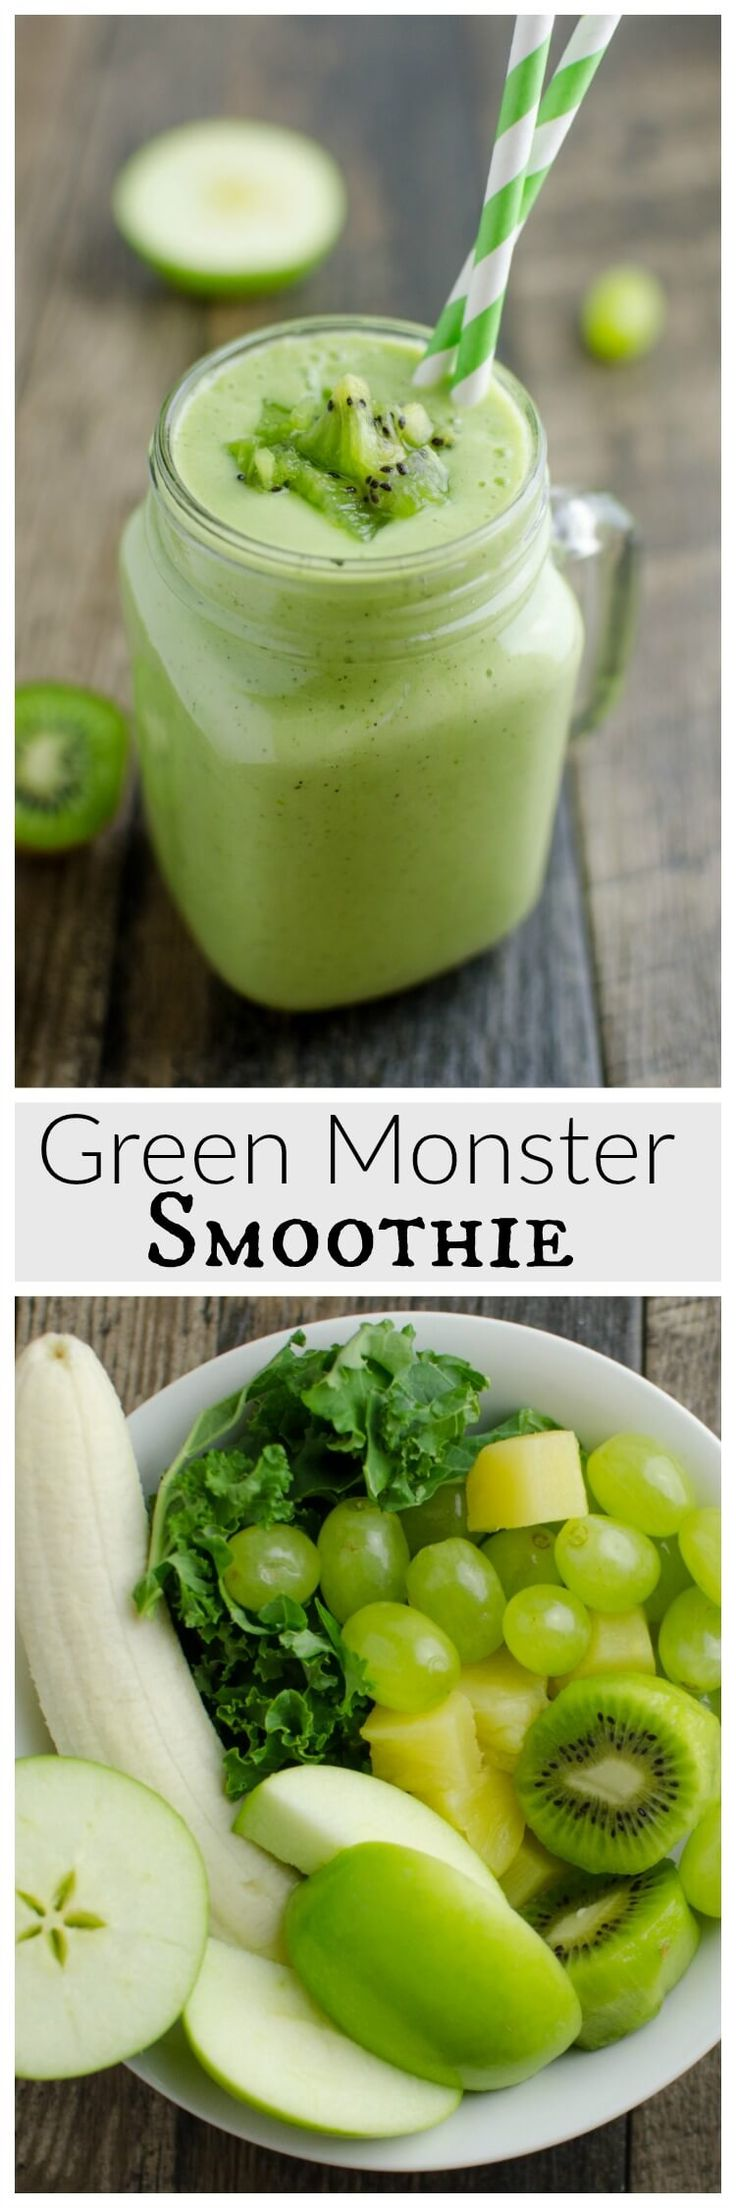 Green never tasted SO good! This Green Monster Smoothie recipe is loaded with vitamins, calcium, and antioxidants, without tasting 'green'.